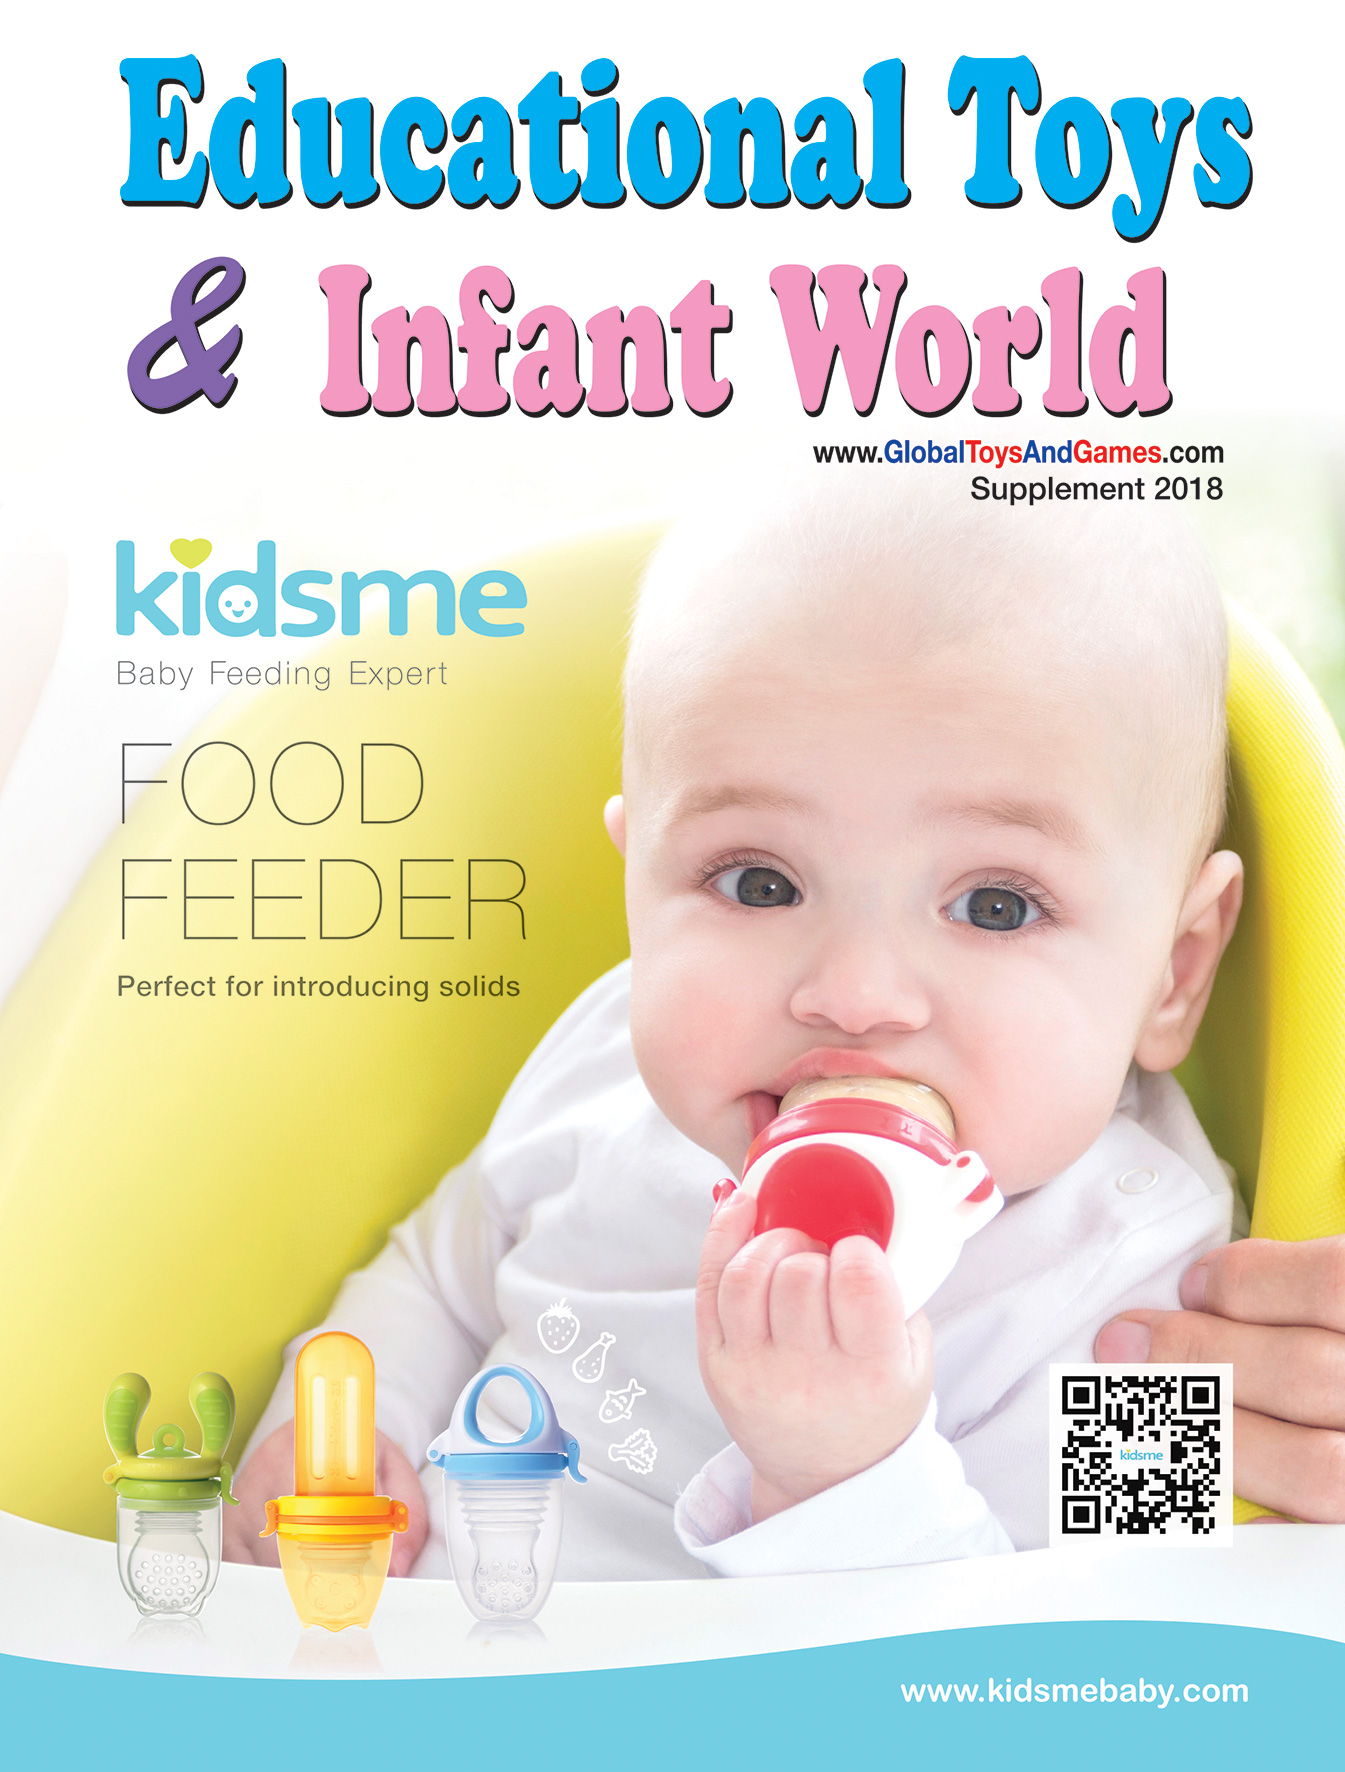 Global Educational Toys & Infant World